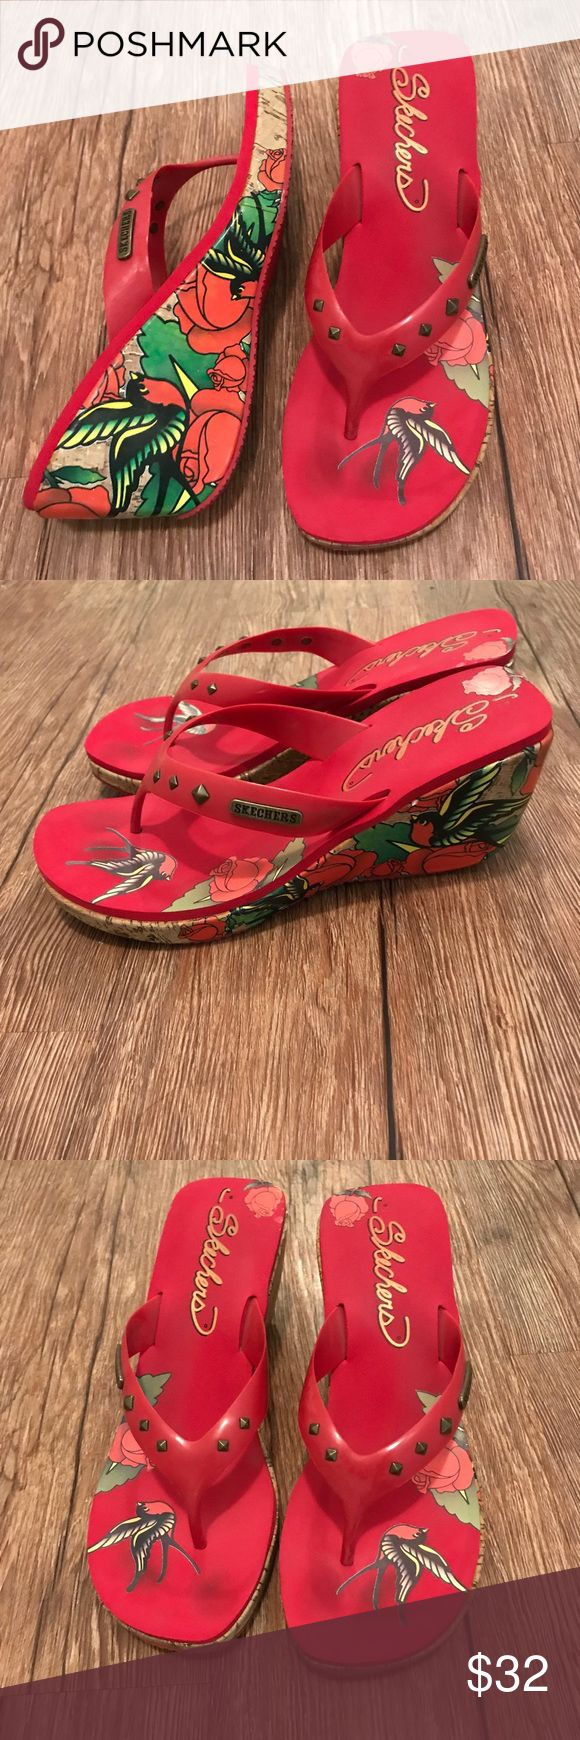 SALE Skechers rose bird red wedge heel sz 9 Skechers wedge high heel shoes with rose and bird tattoo style art work design. Size 9. No original box. Only wore these a times. GUC. Skechers Shoes Heels